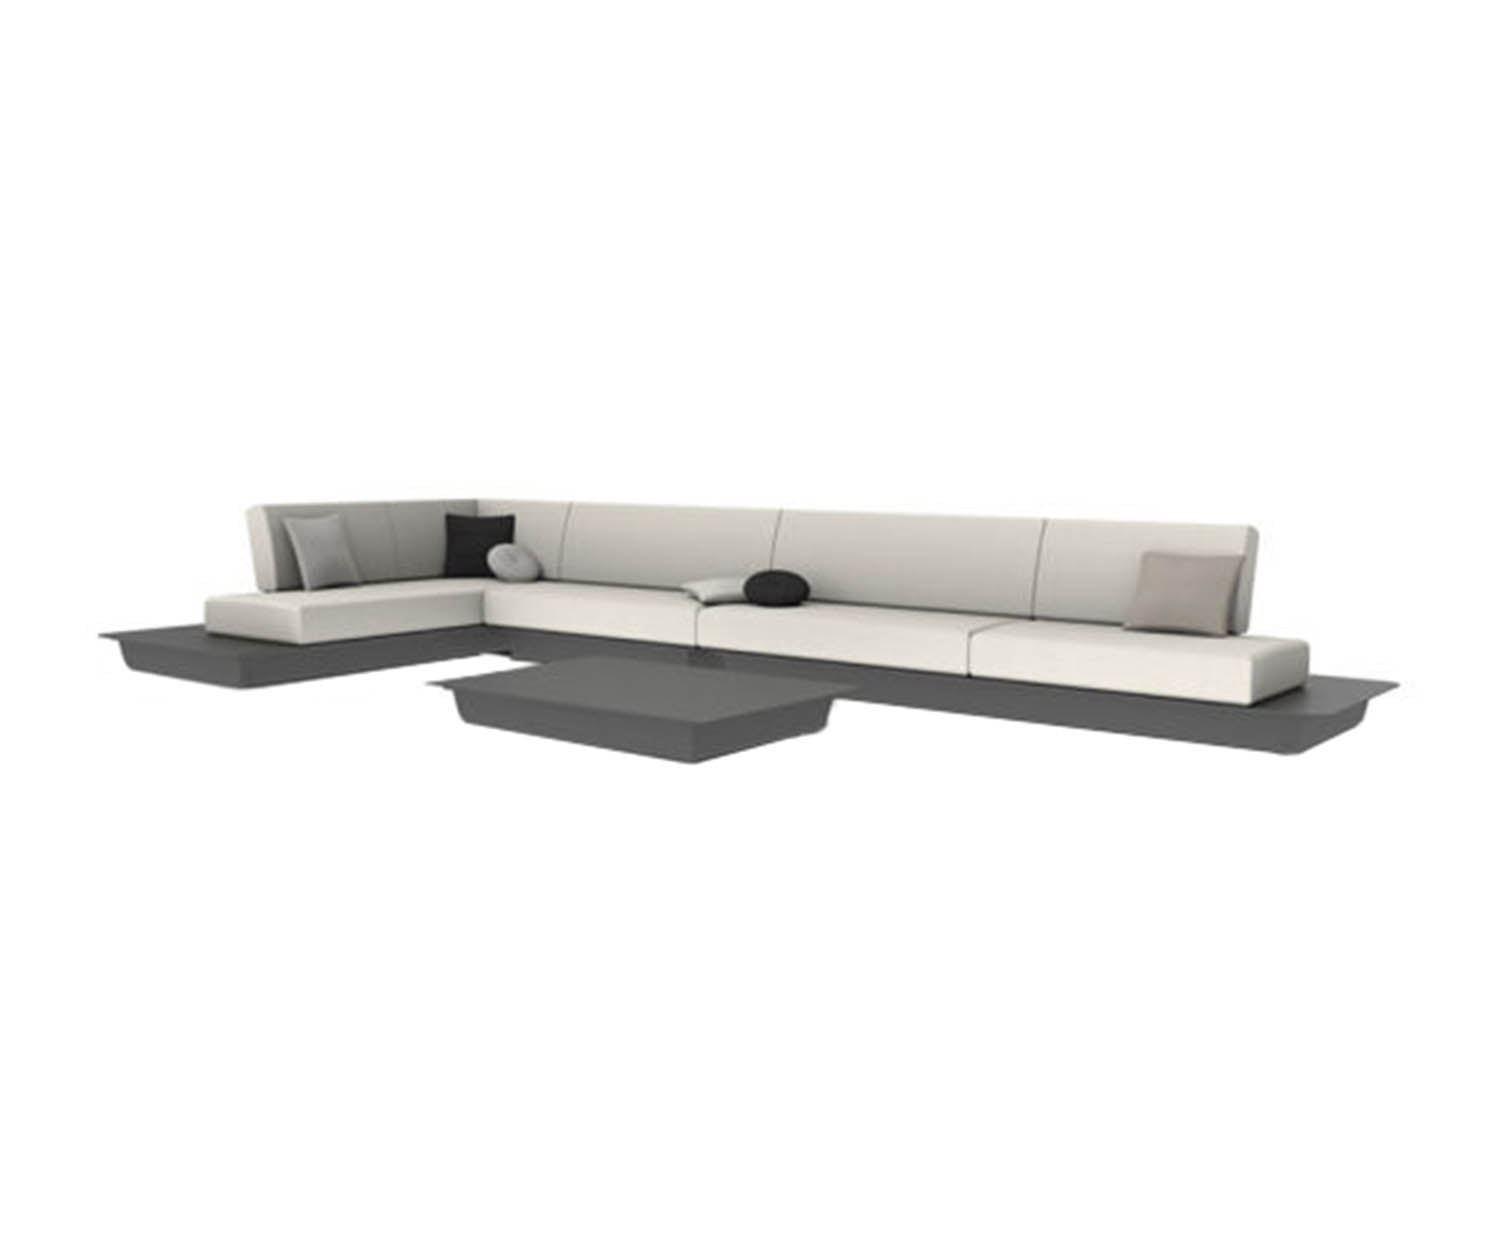 Manutti Air Concept 2 Sectional